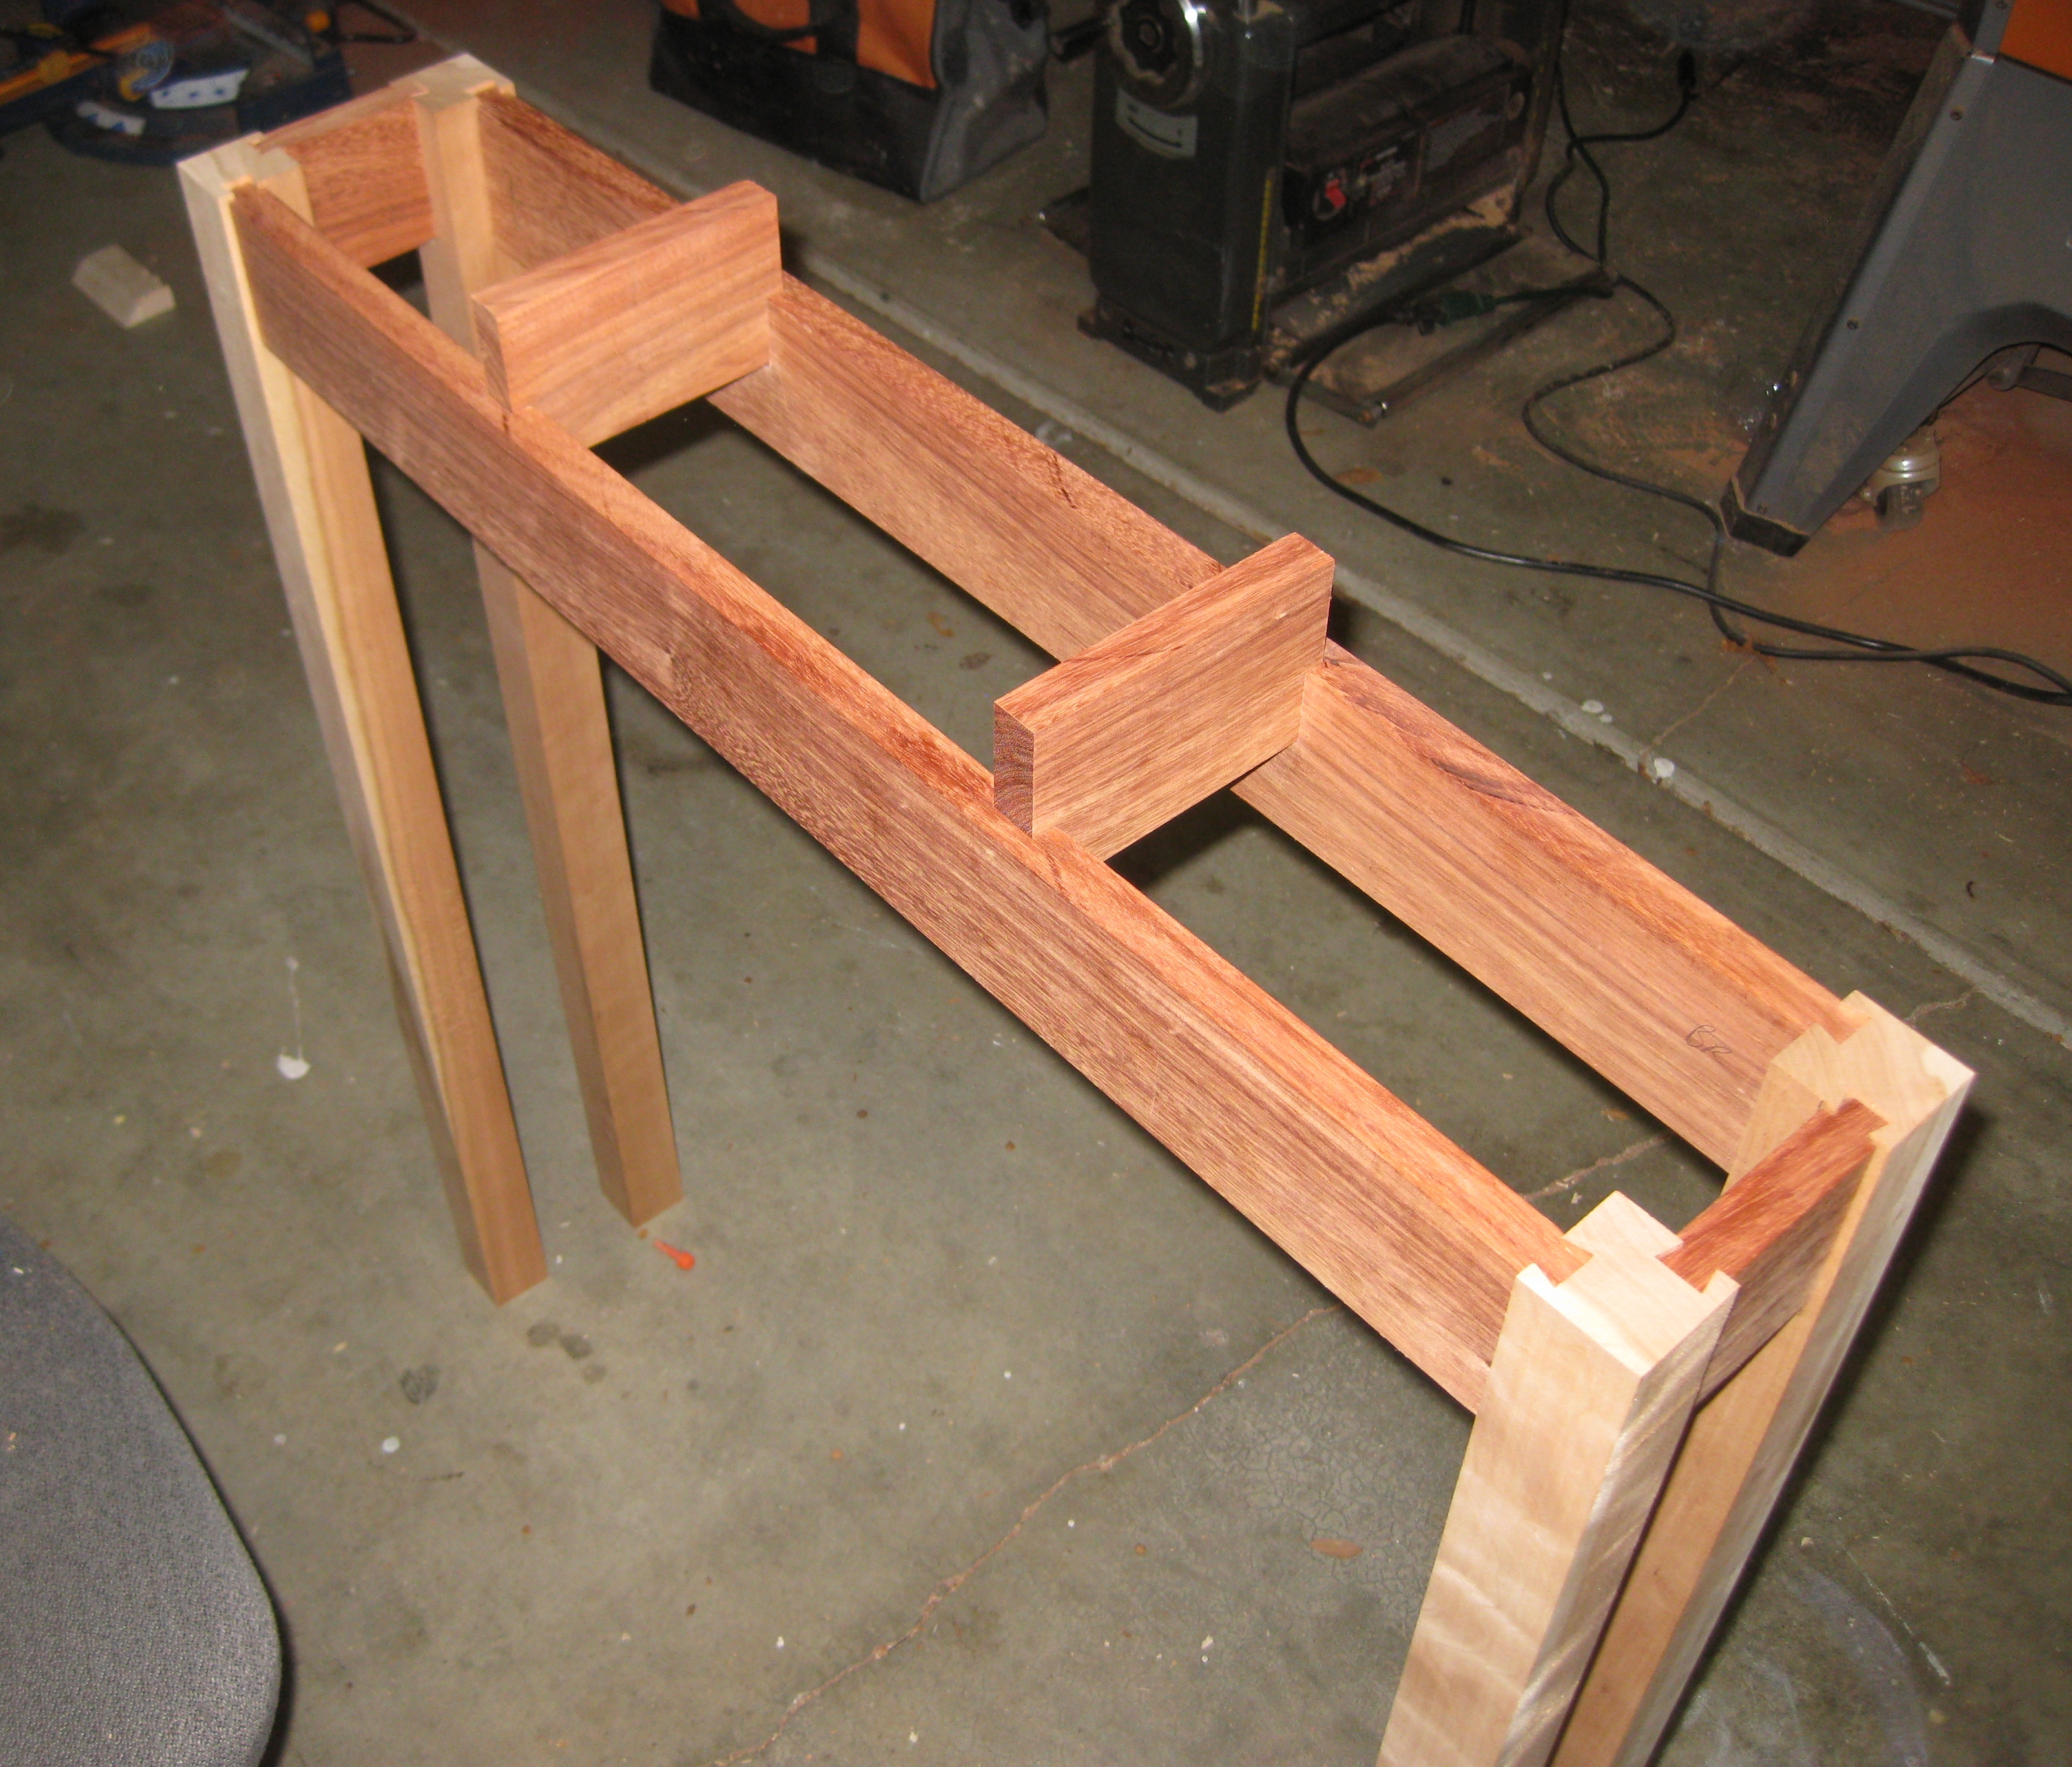 Second dry fit of the frame, with the floats sized and in place.